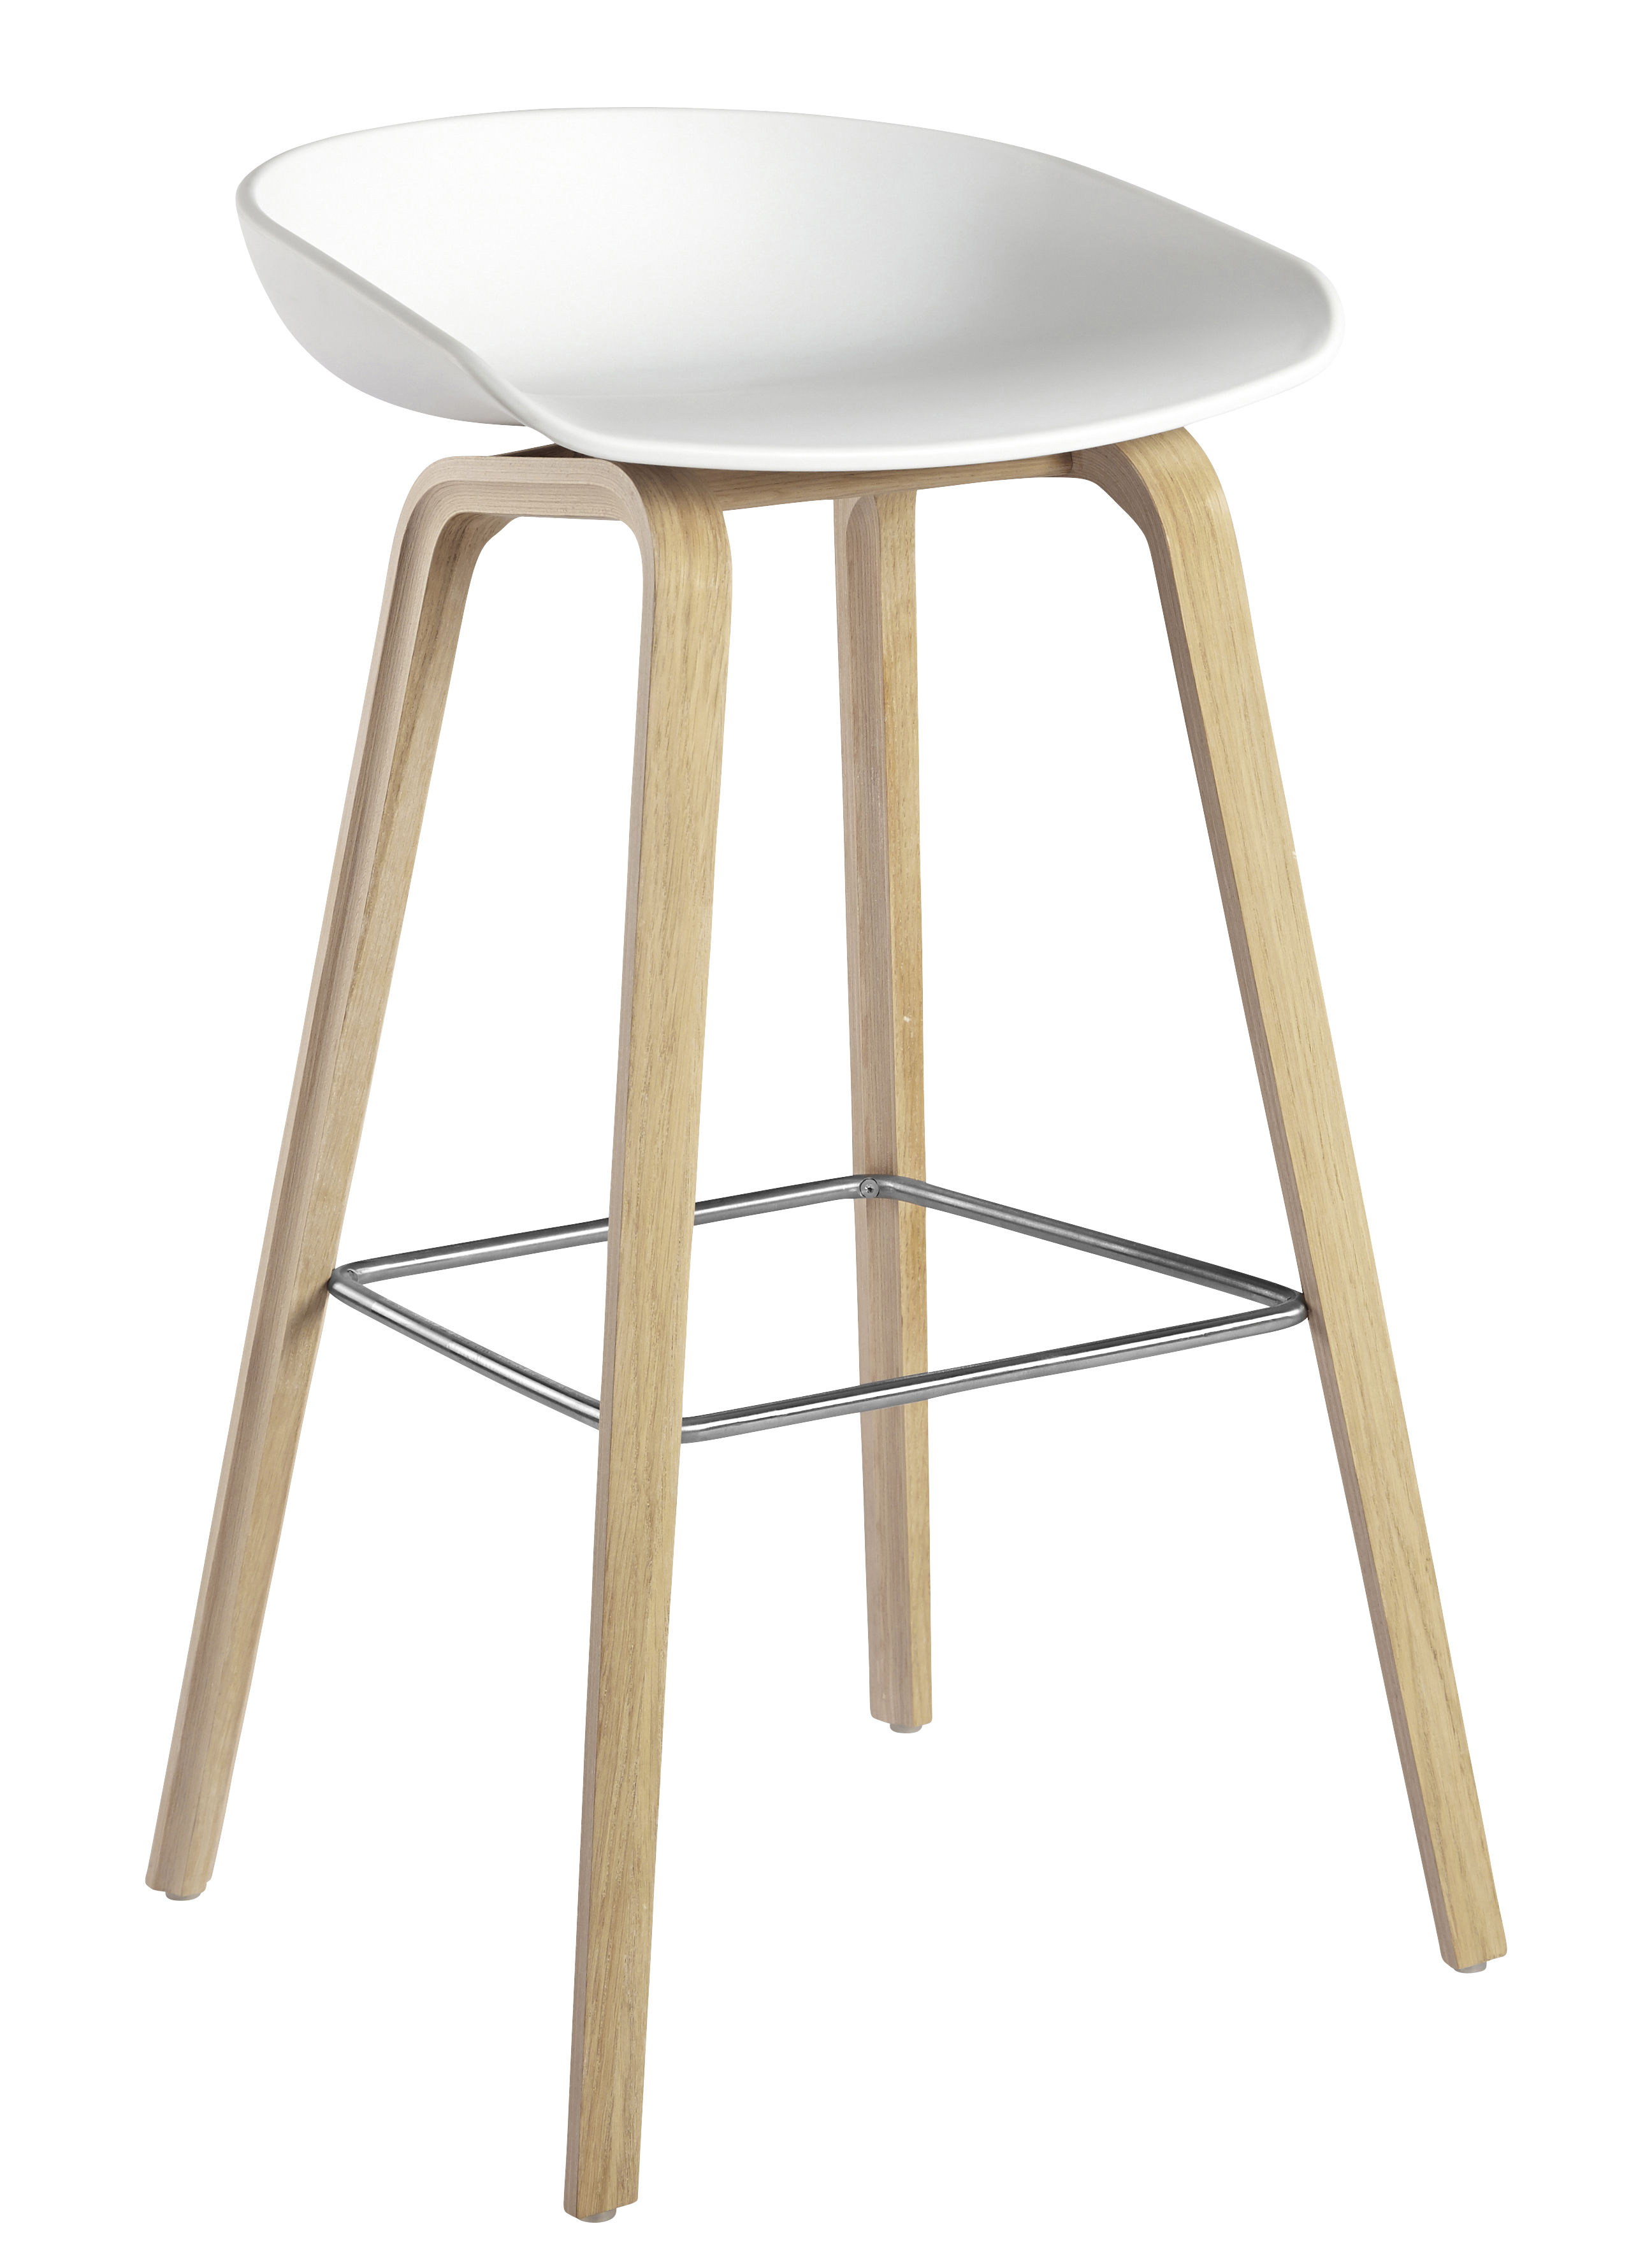 About a stool AAS 32 Bar stool H 75 cm Plastic amp wood  : b2c038fc 84bd 4c29 91e9 ef3939ade8be from www.madeindesign.co.uk size 2592 x 3559 jpeg 388kB